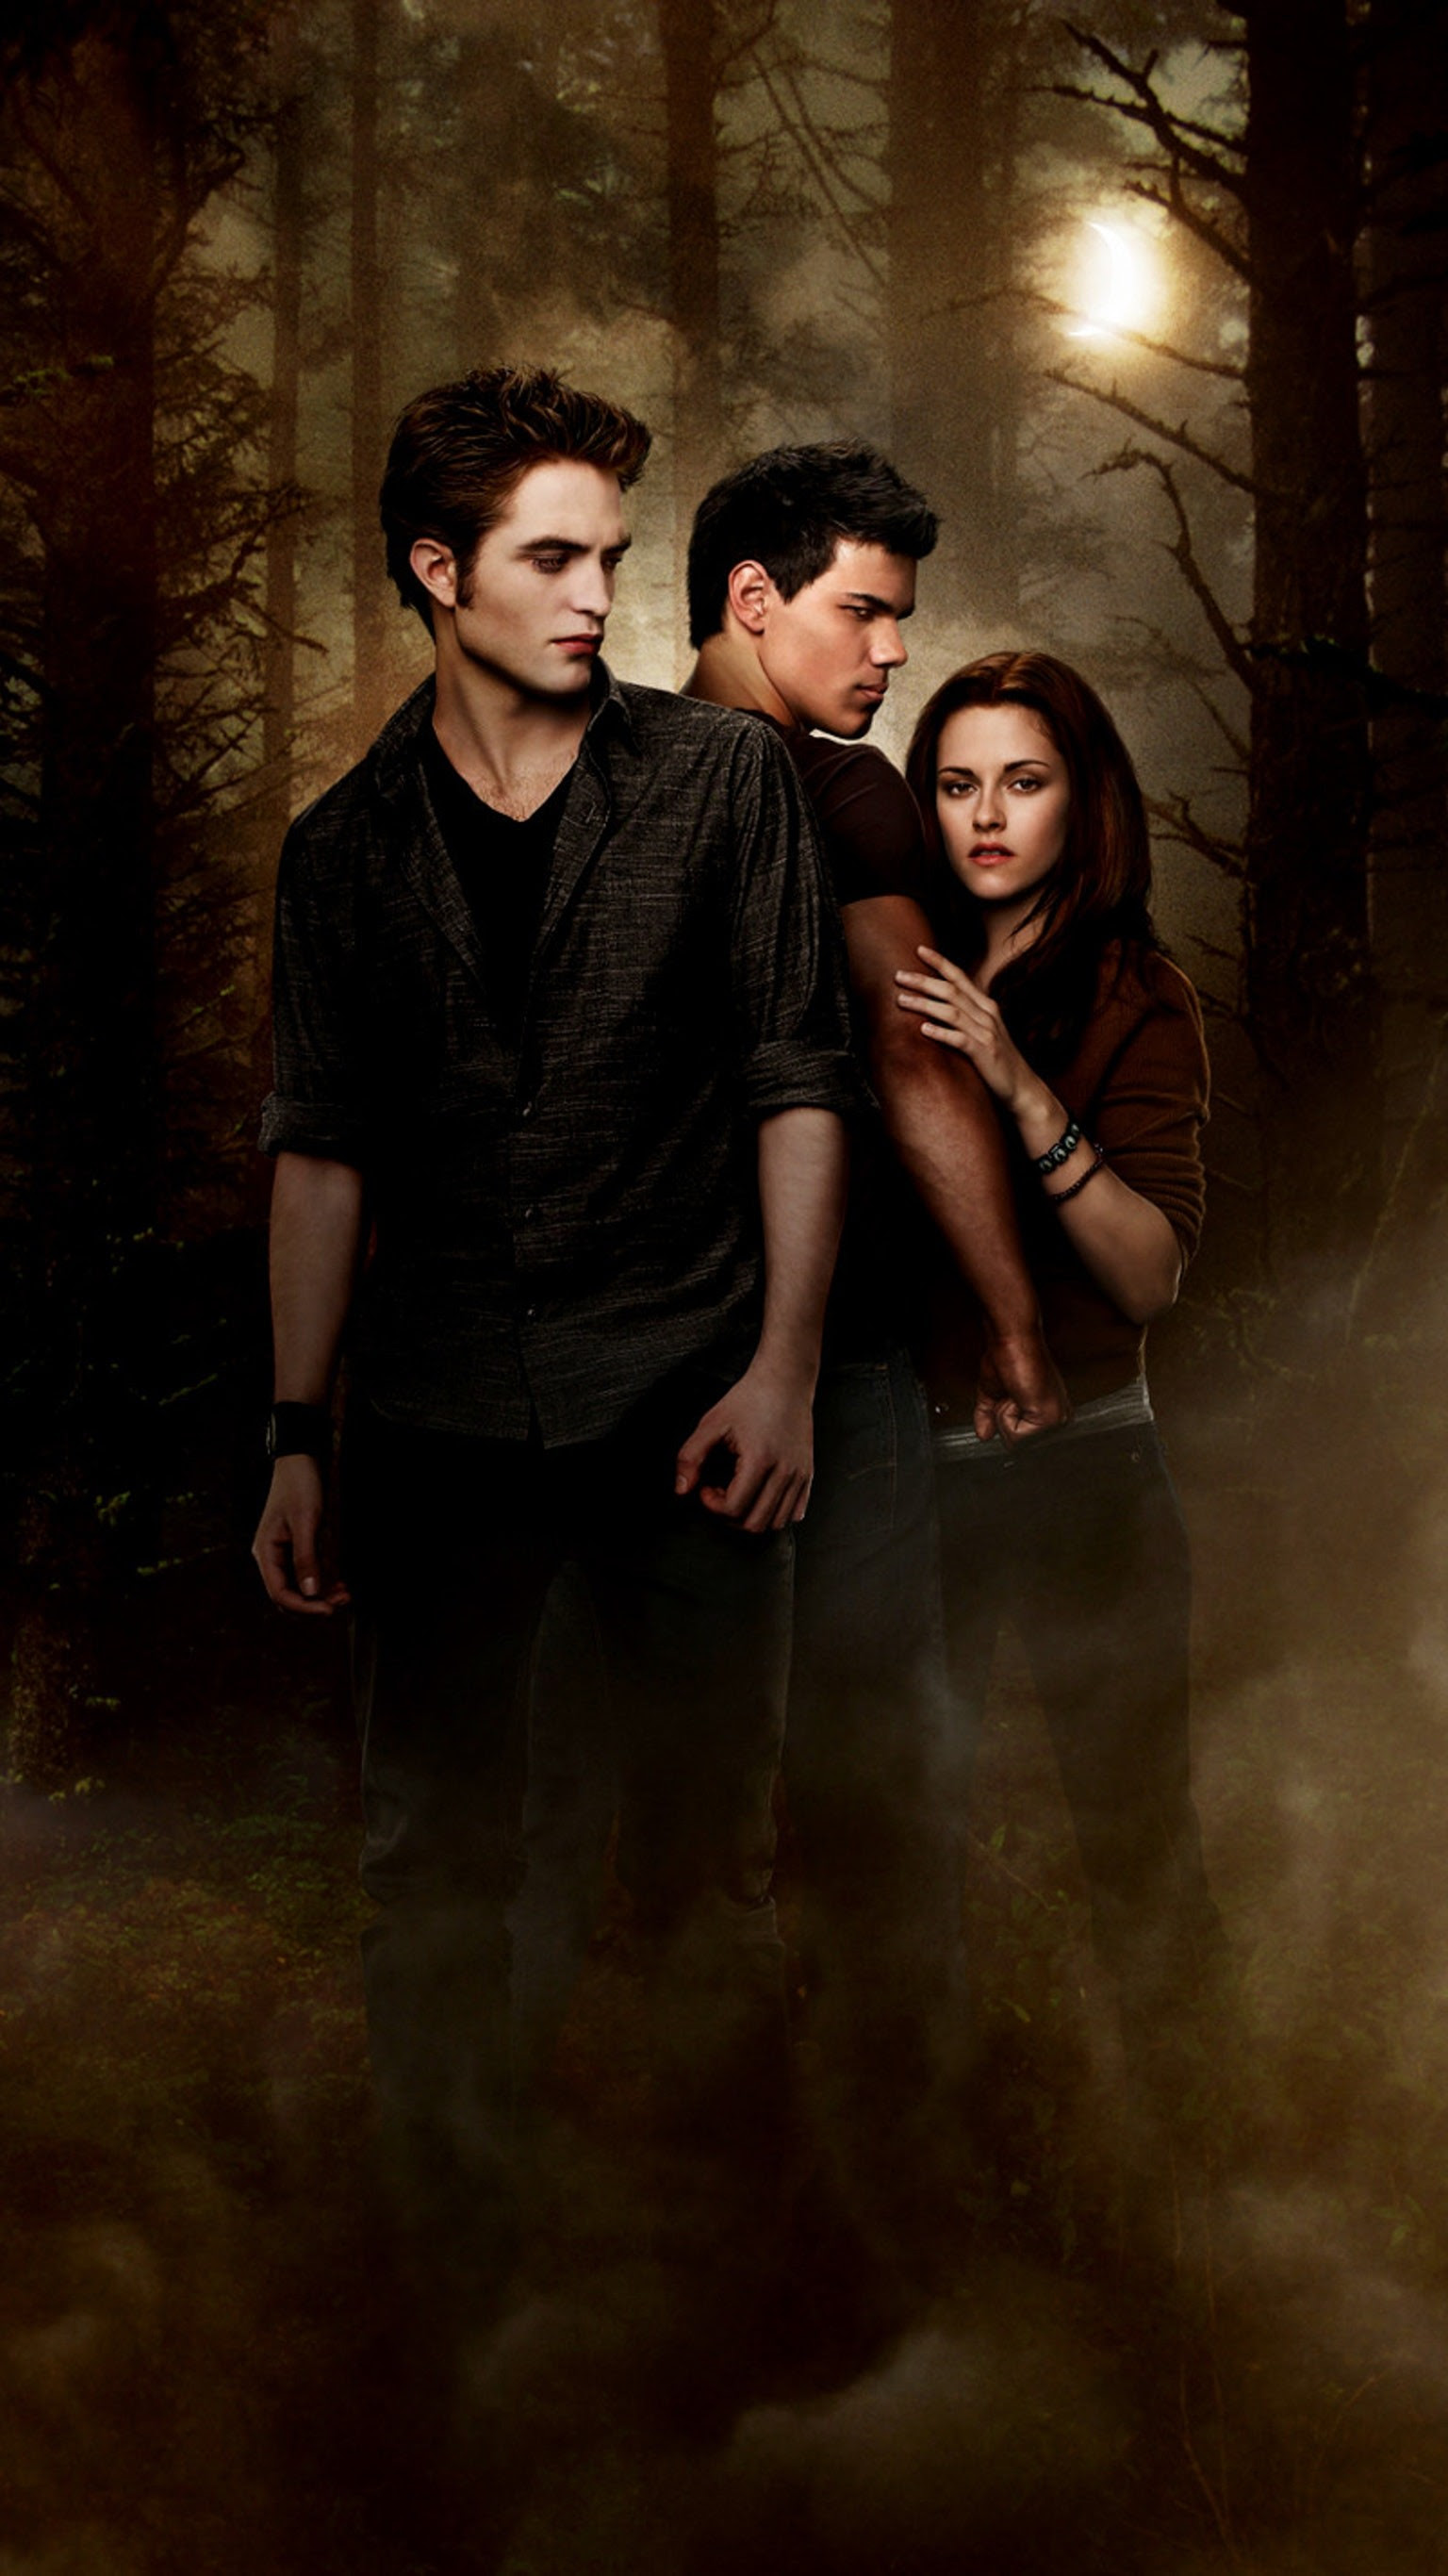 Twilight Series Wallpaper 63 Images